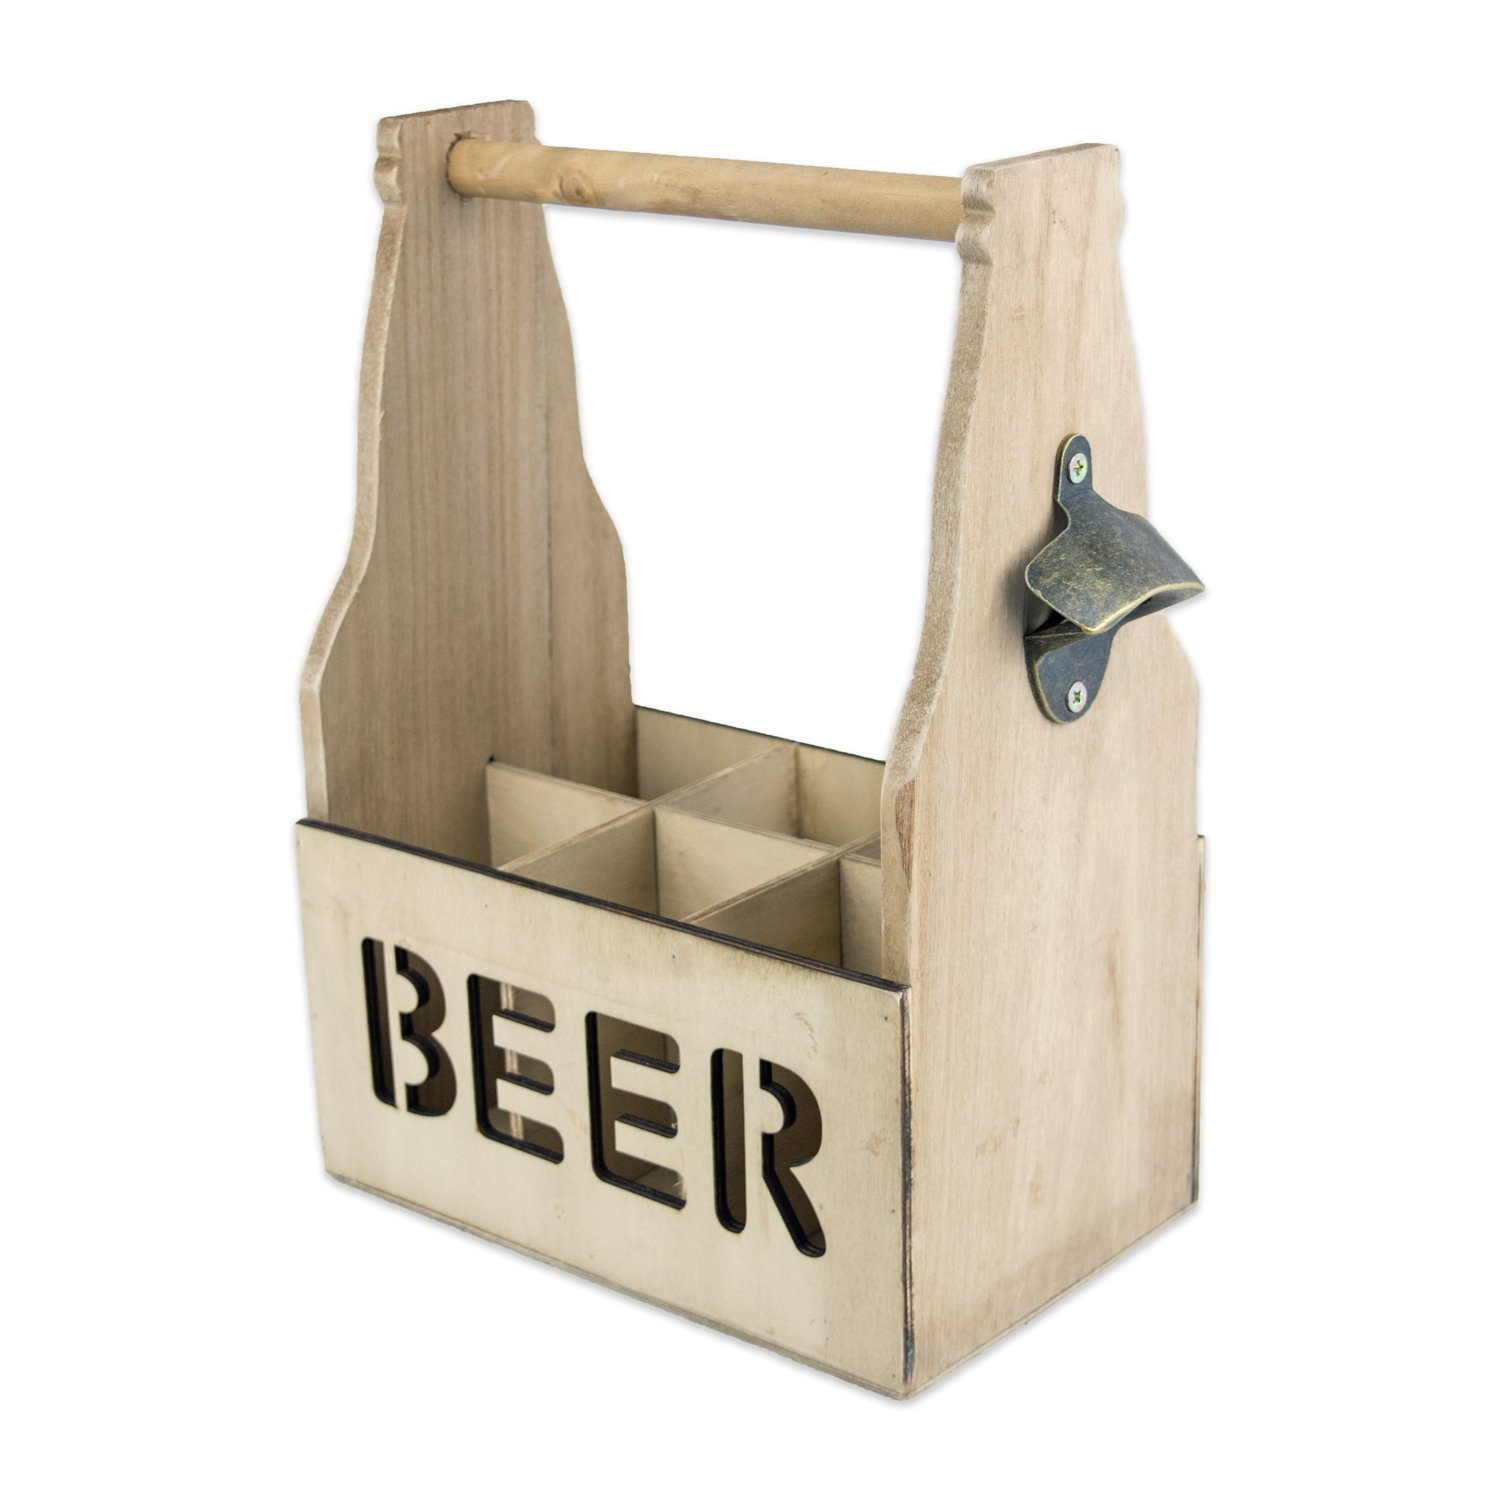 DII Rustic Wooden Beer and Soda Carrier 6 Pack Carrier For Home Brewing, Man Cave, Camping, Party, and Daily Use